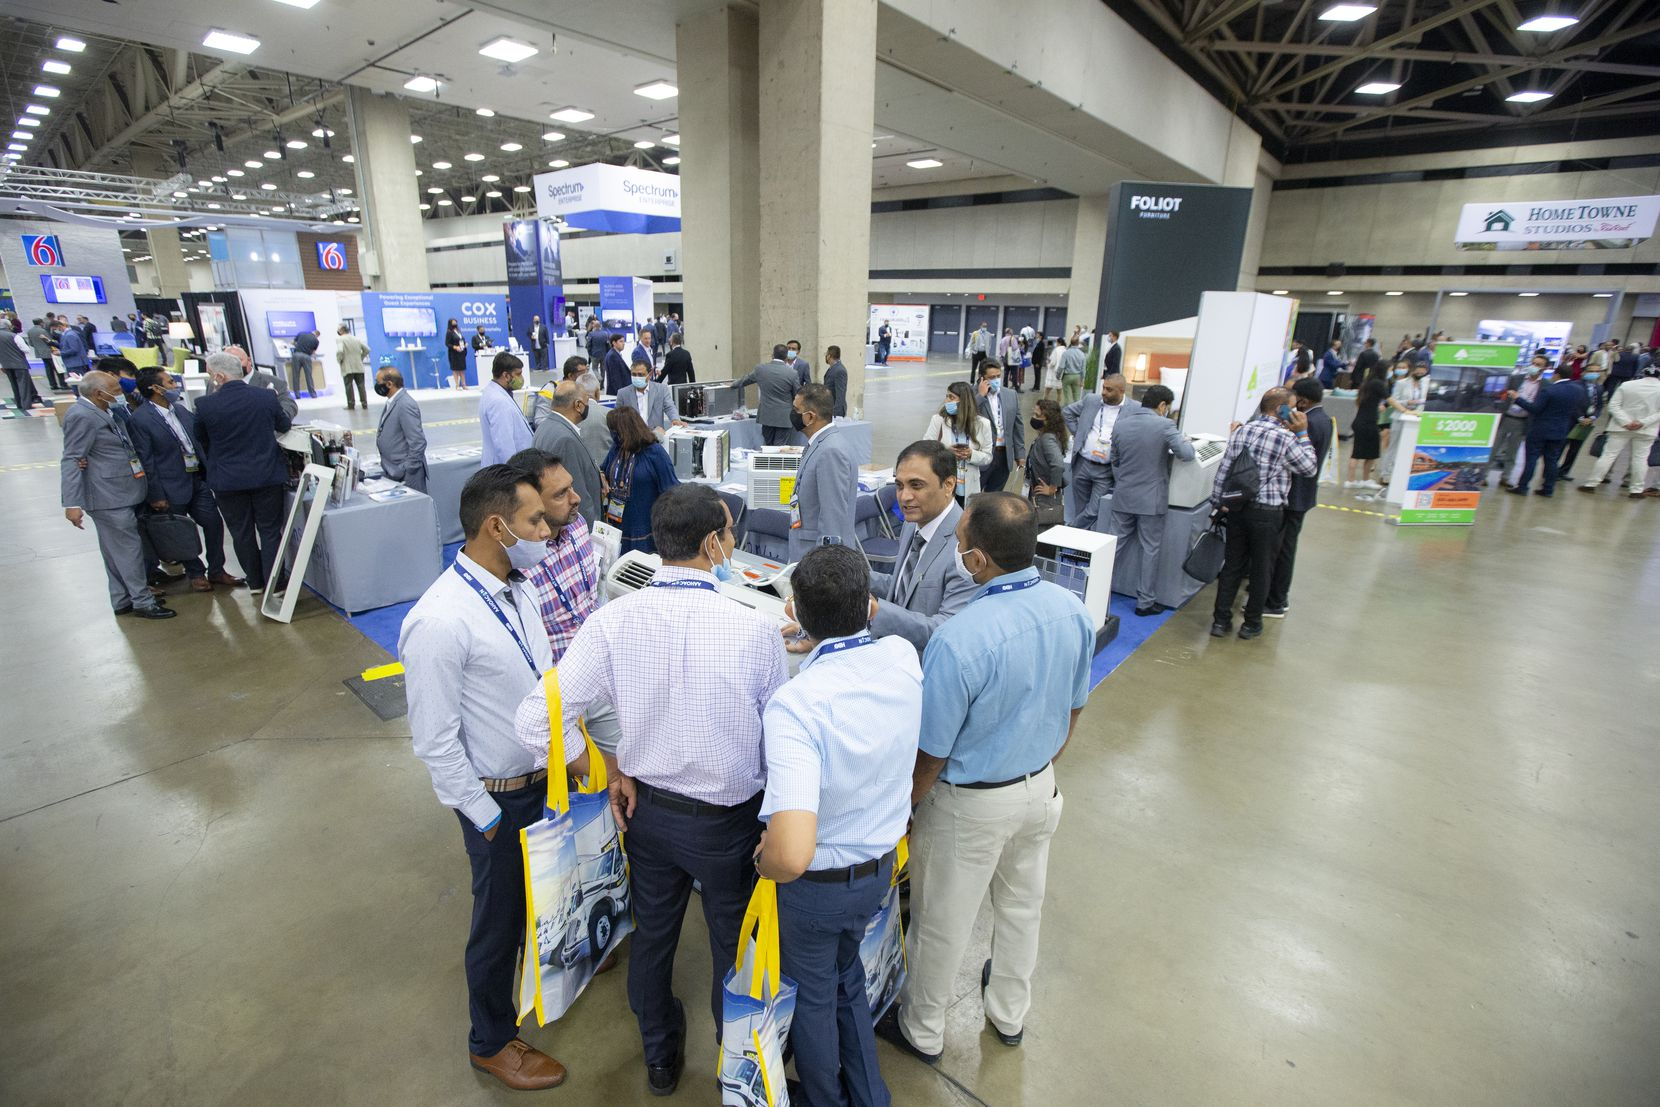 Attendees browse HVAC systems from a vendor at the Asian American Hotel Owners Association convention in Dallas.